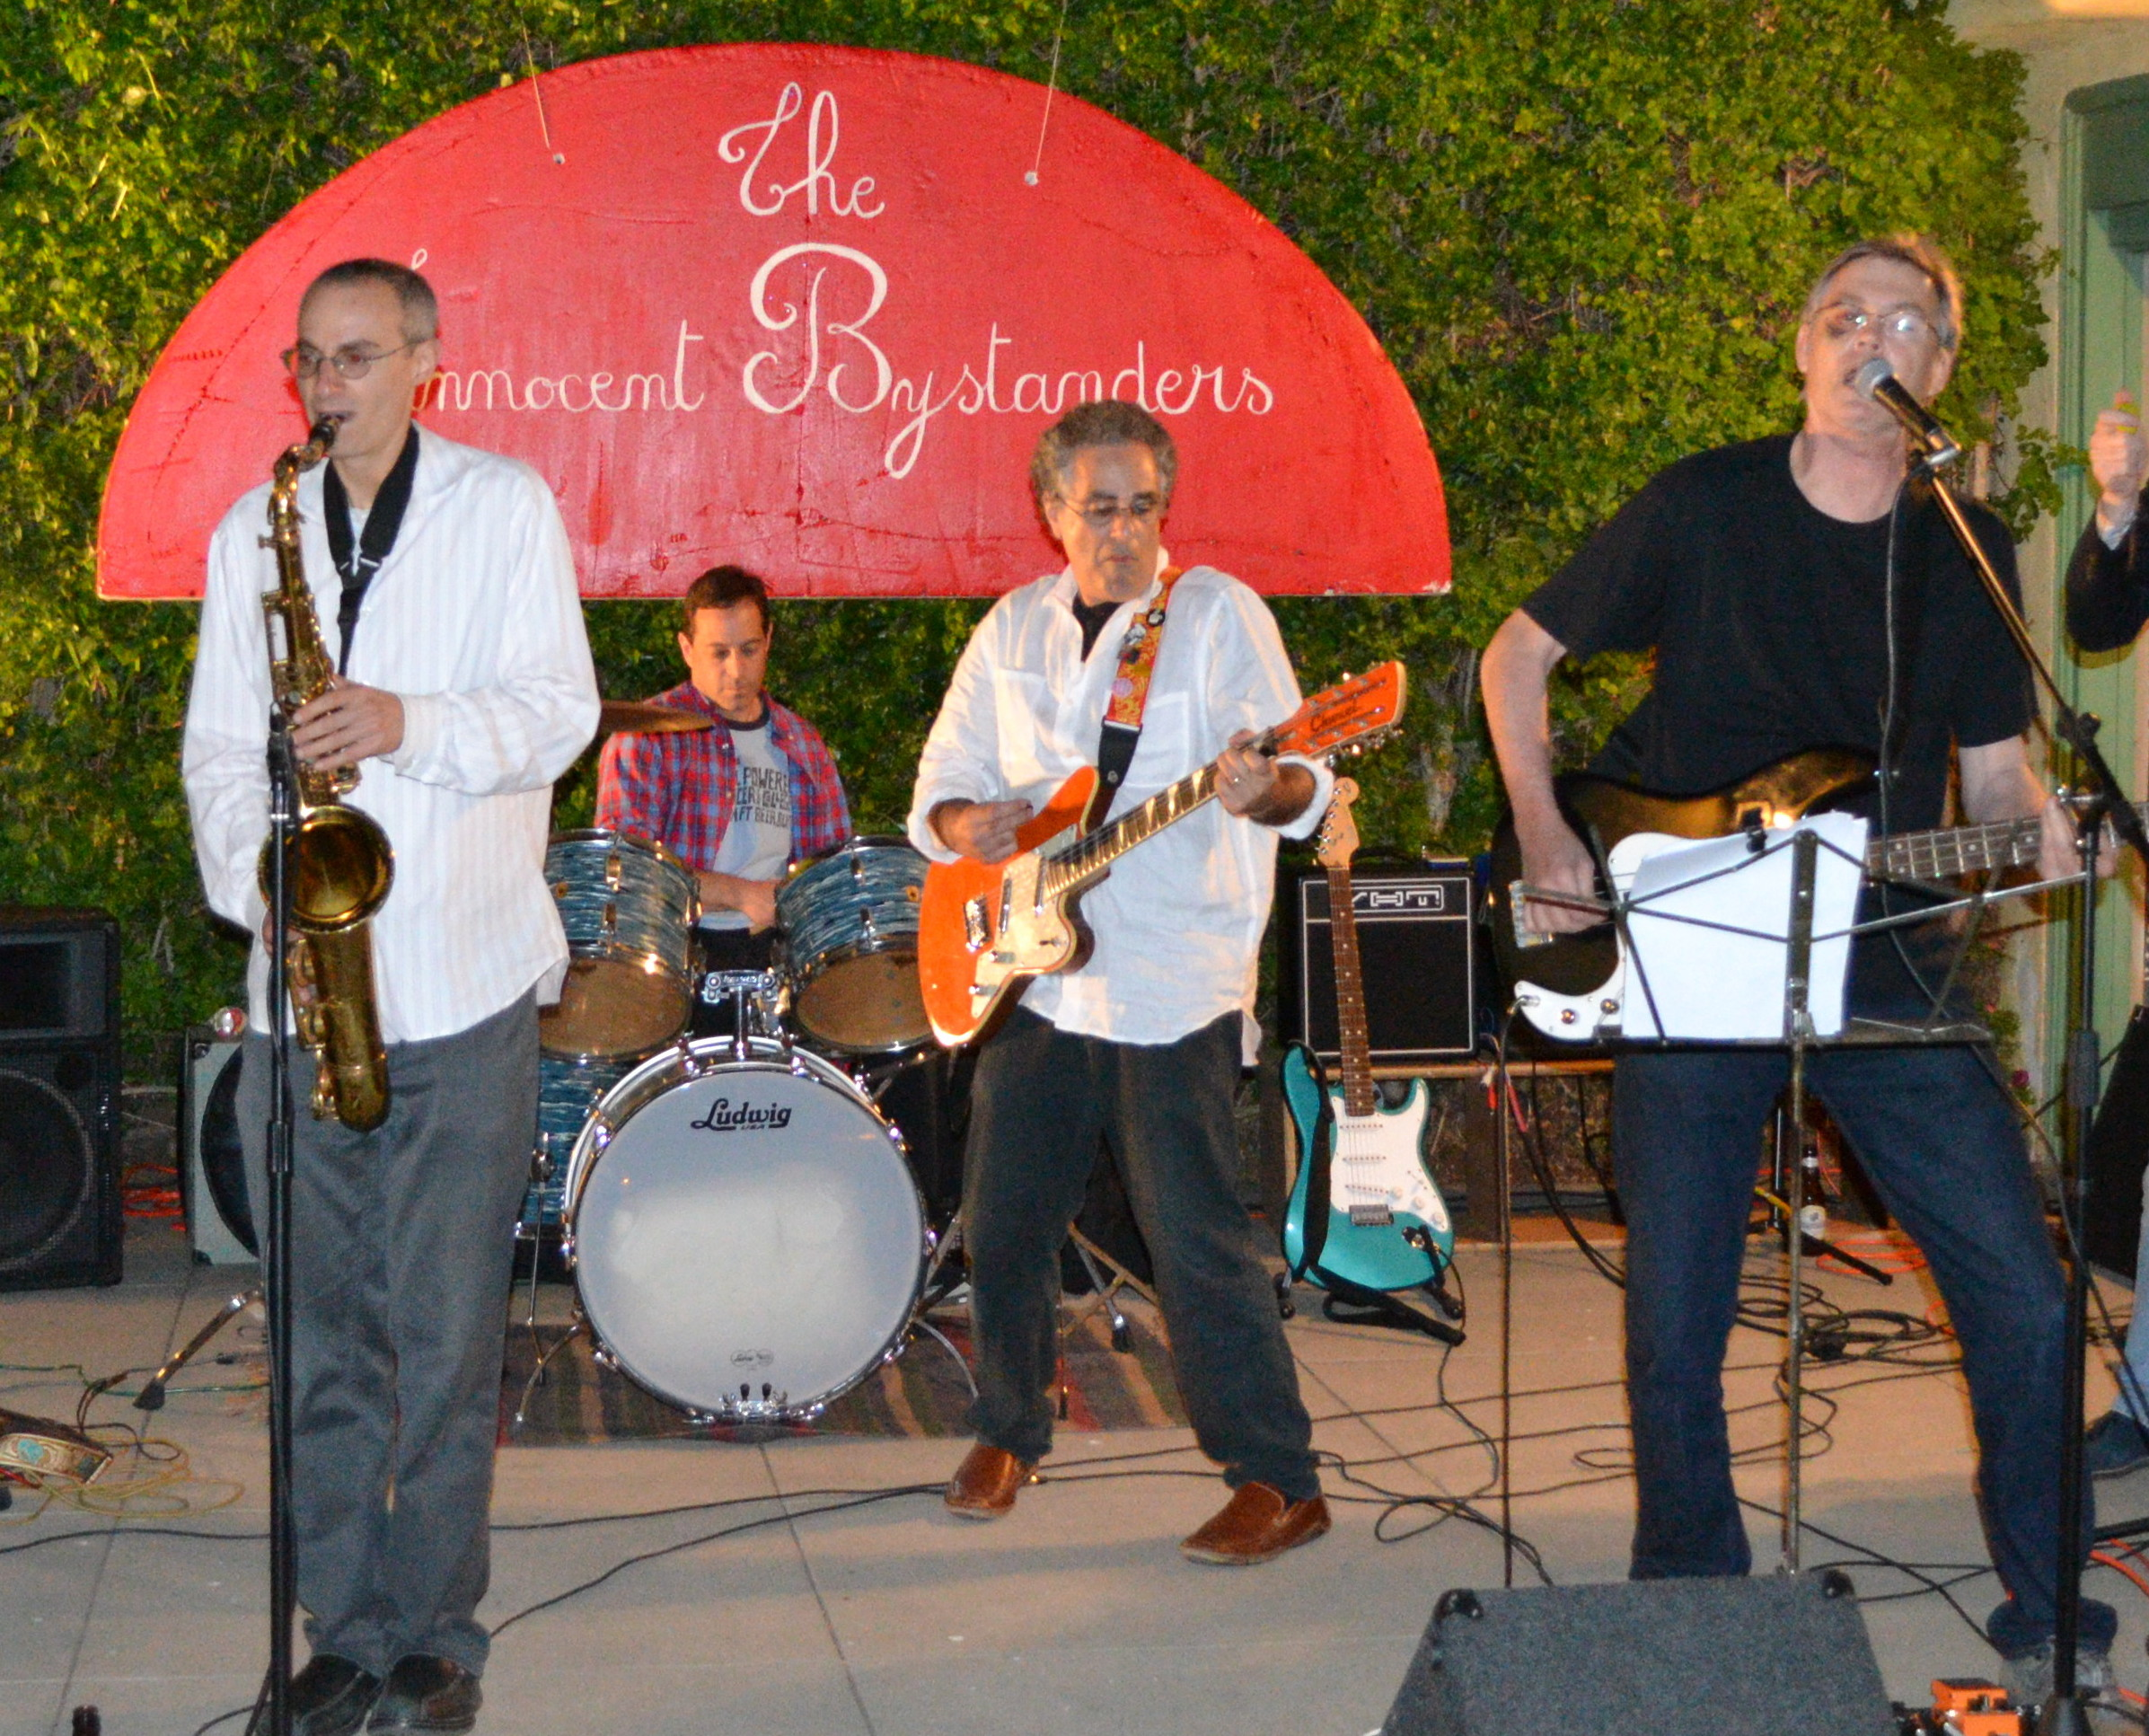 The Innocent Bystanders Play Live Music A Backyard Party In Kensington Section Of San Diego